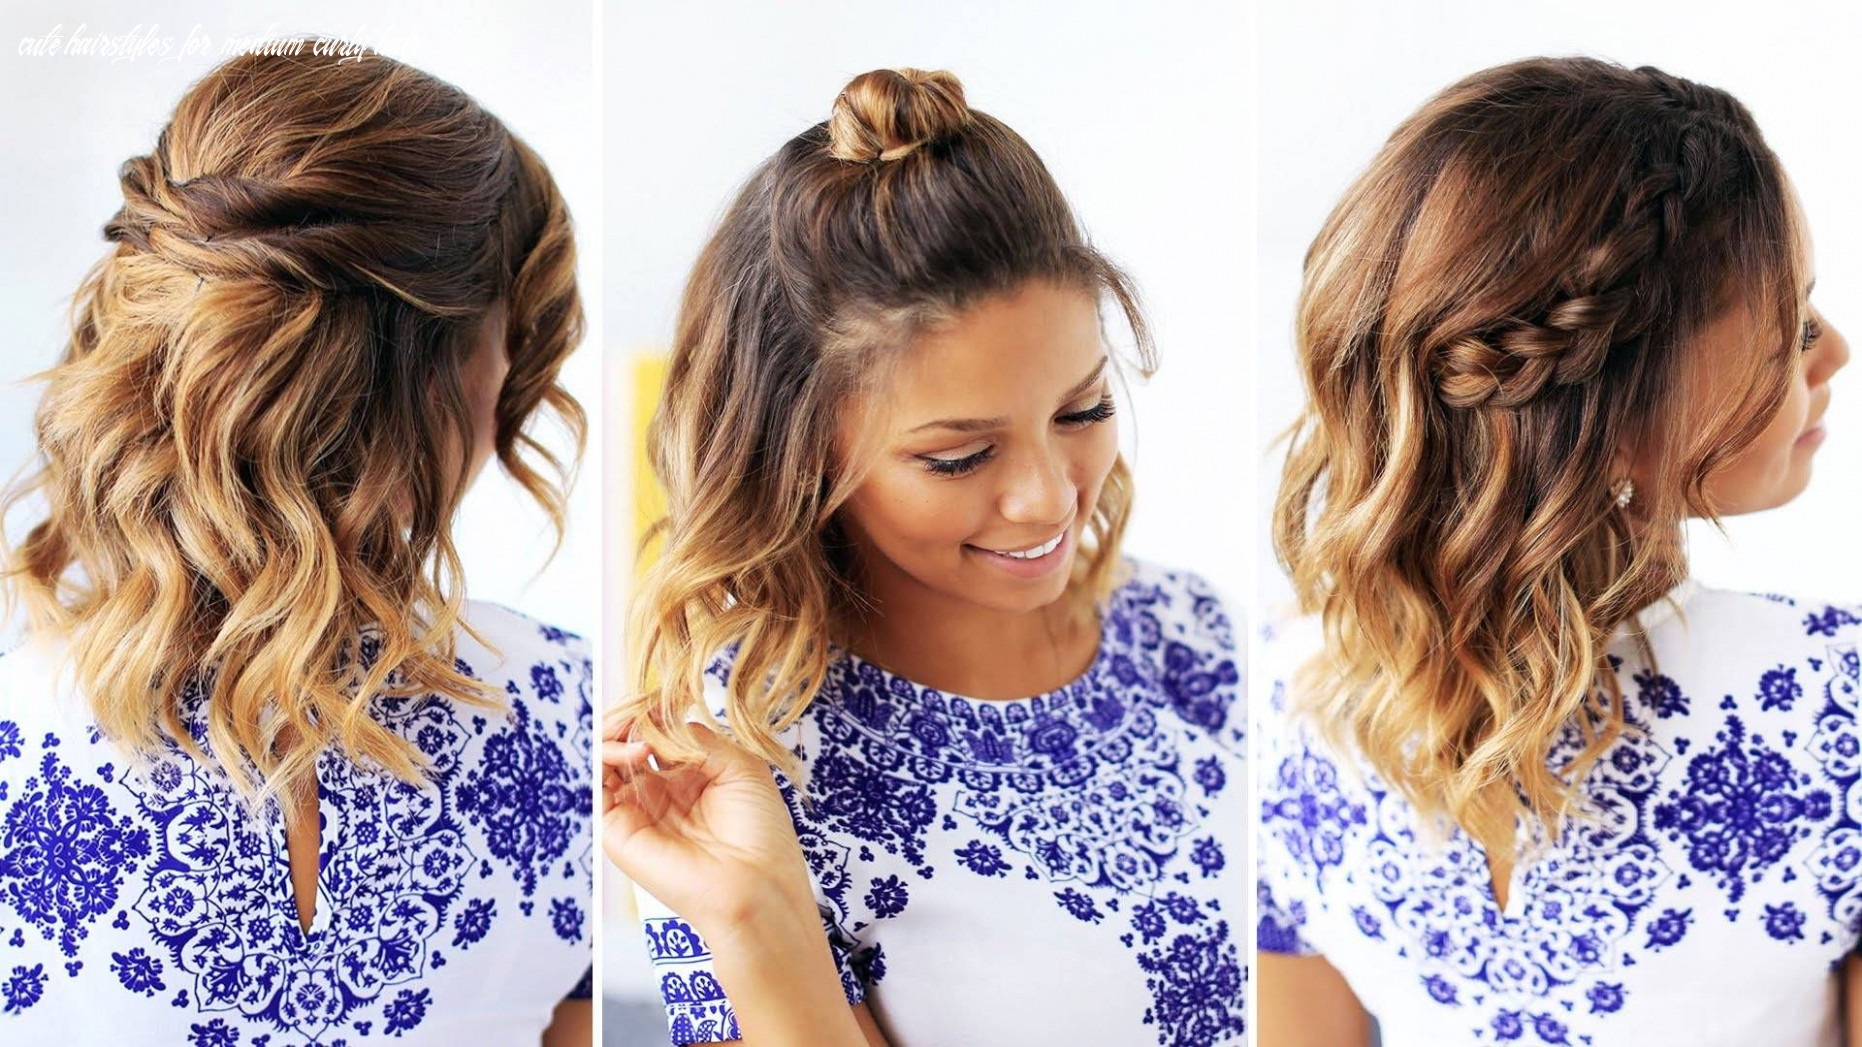 8 Easy Hairstyles For Short Hair Youtube (With images) | Short ...